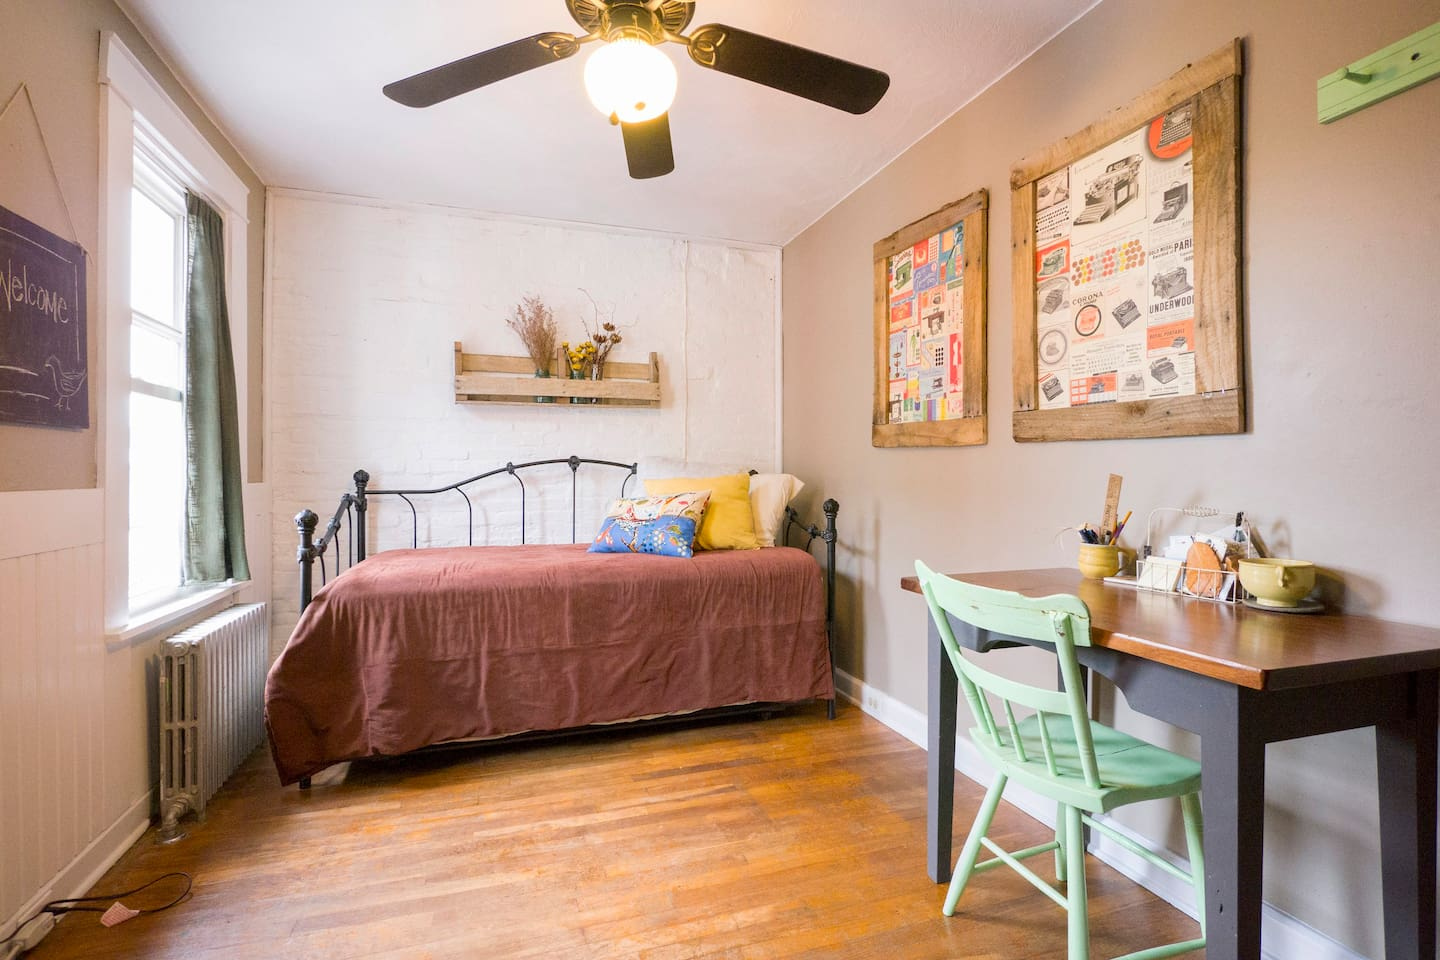 Welcome to our guest room! We can accommodate a single person...